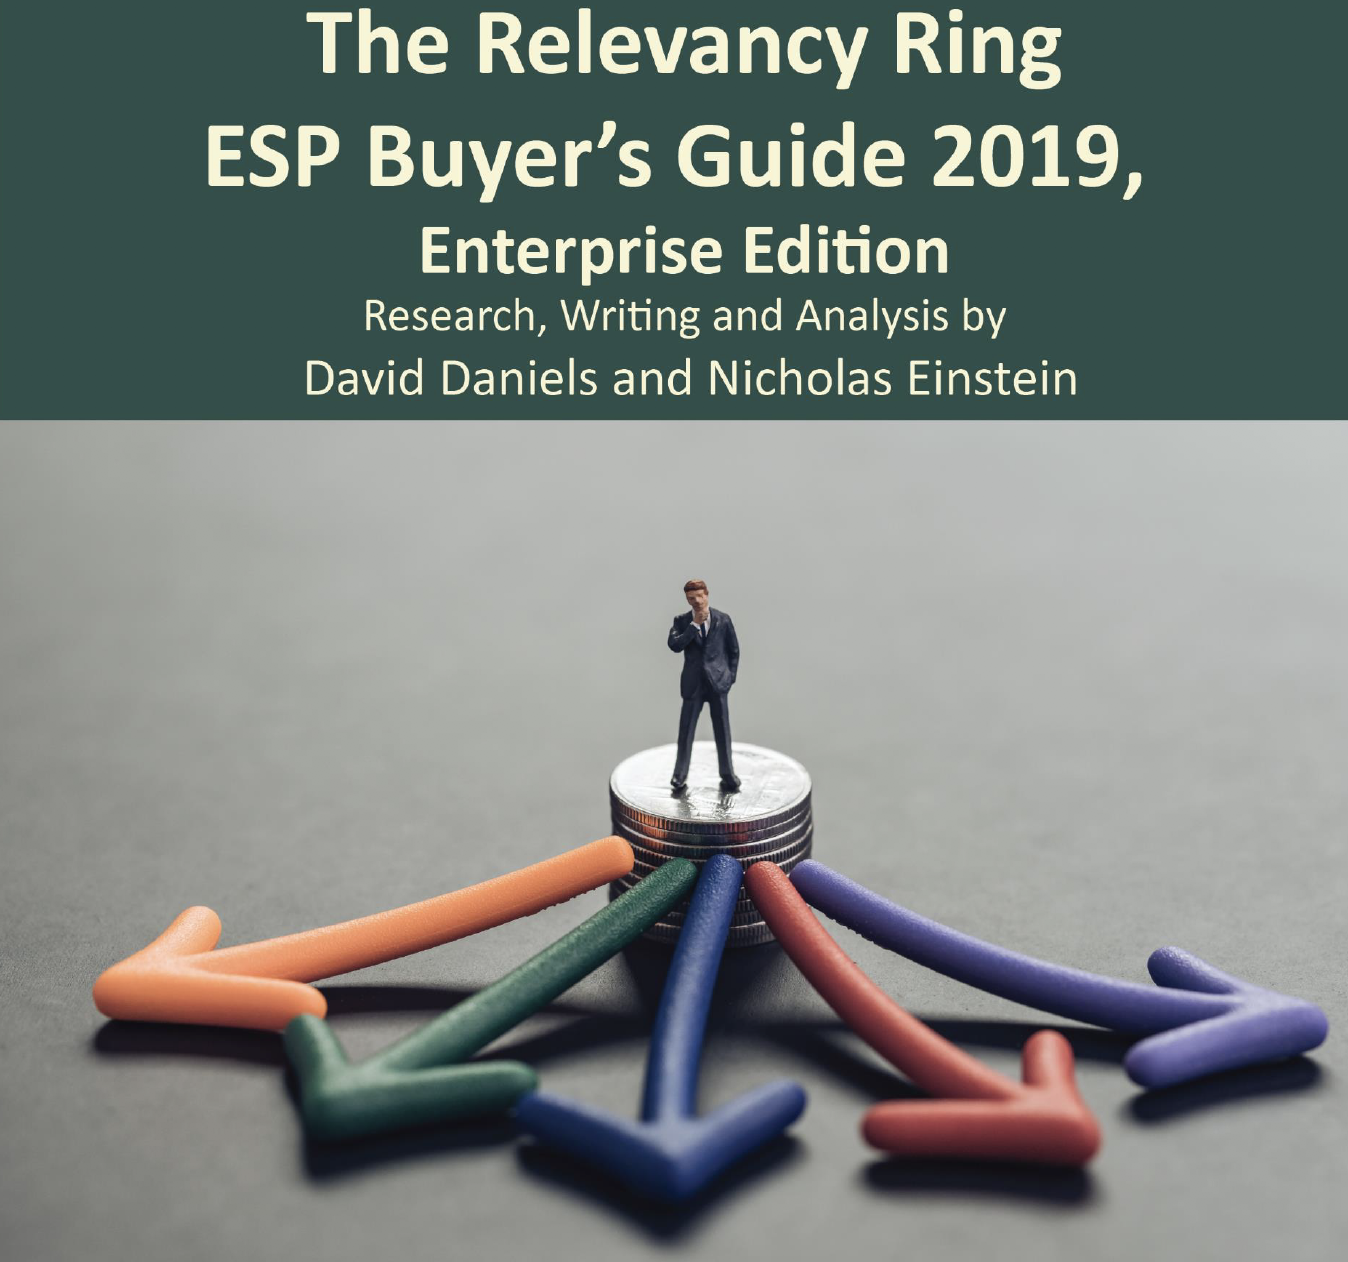 The Relevancy Ring ESP Buyer's Guide 2019, Enterprise Edition